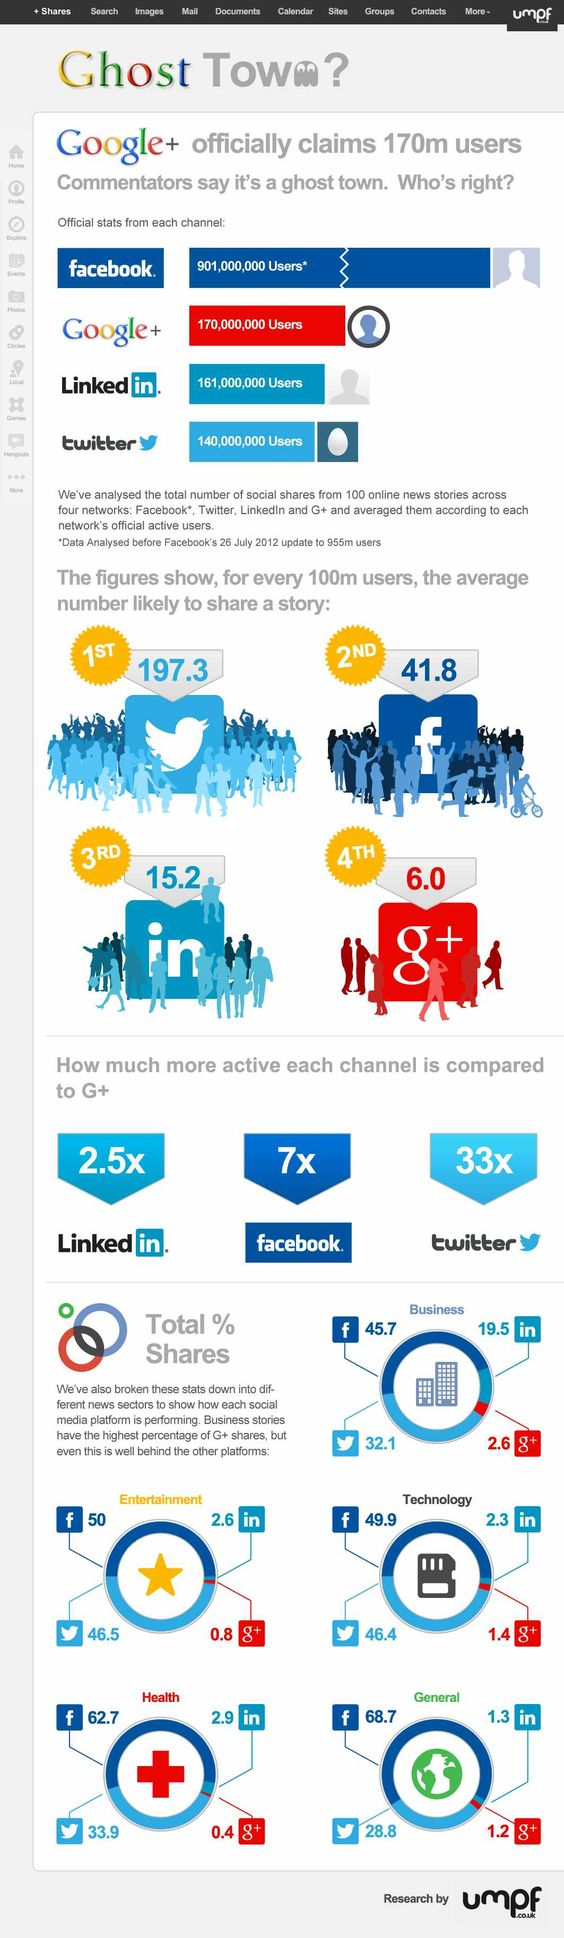 Twitter Beats Facebook For Social Sharing (And, Yes, Google+ Is A Ghost Town) [STUDY]